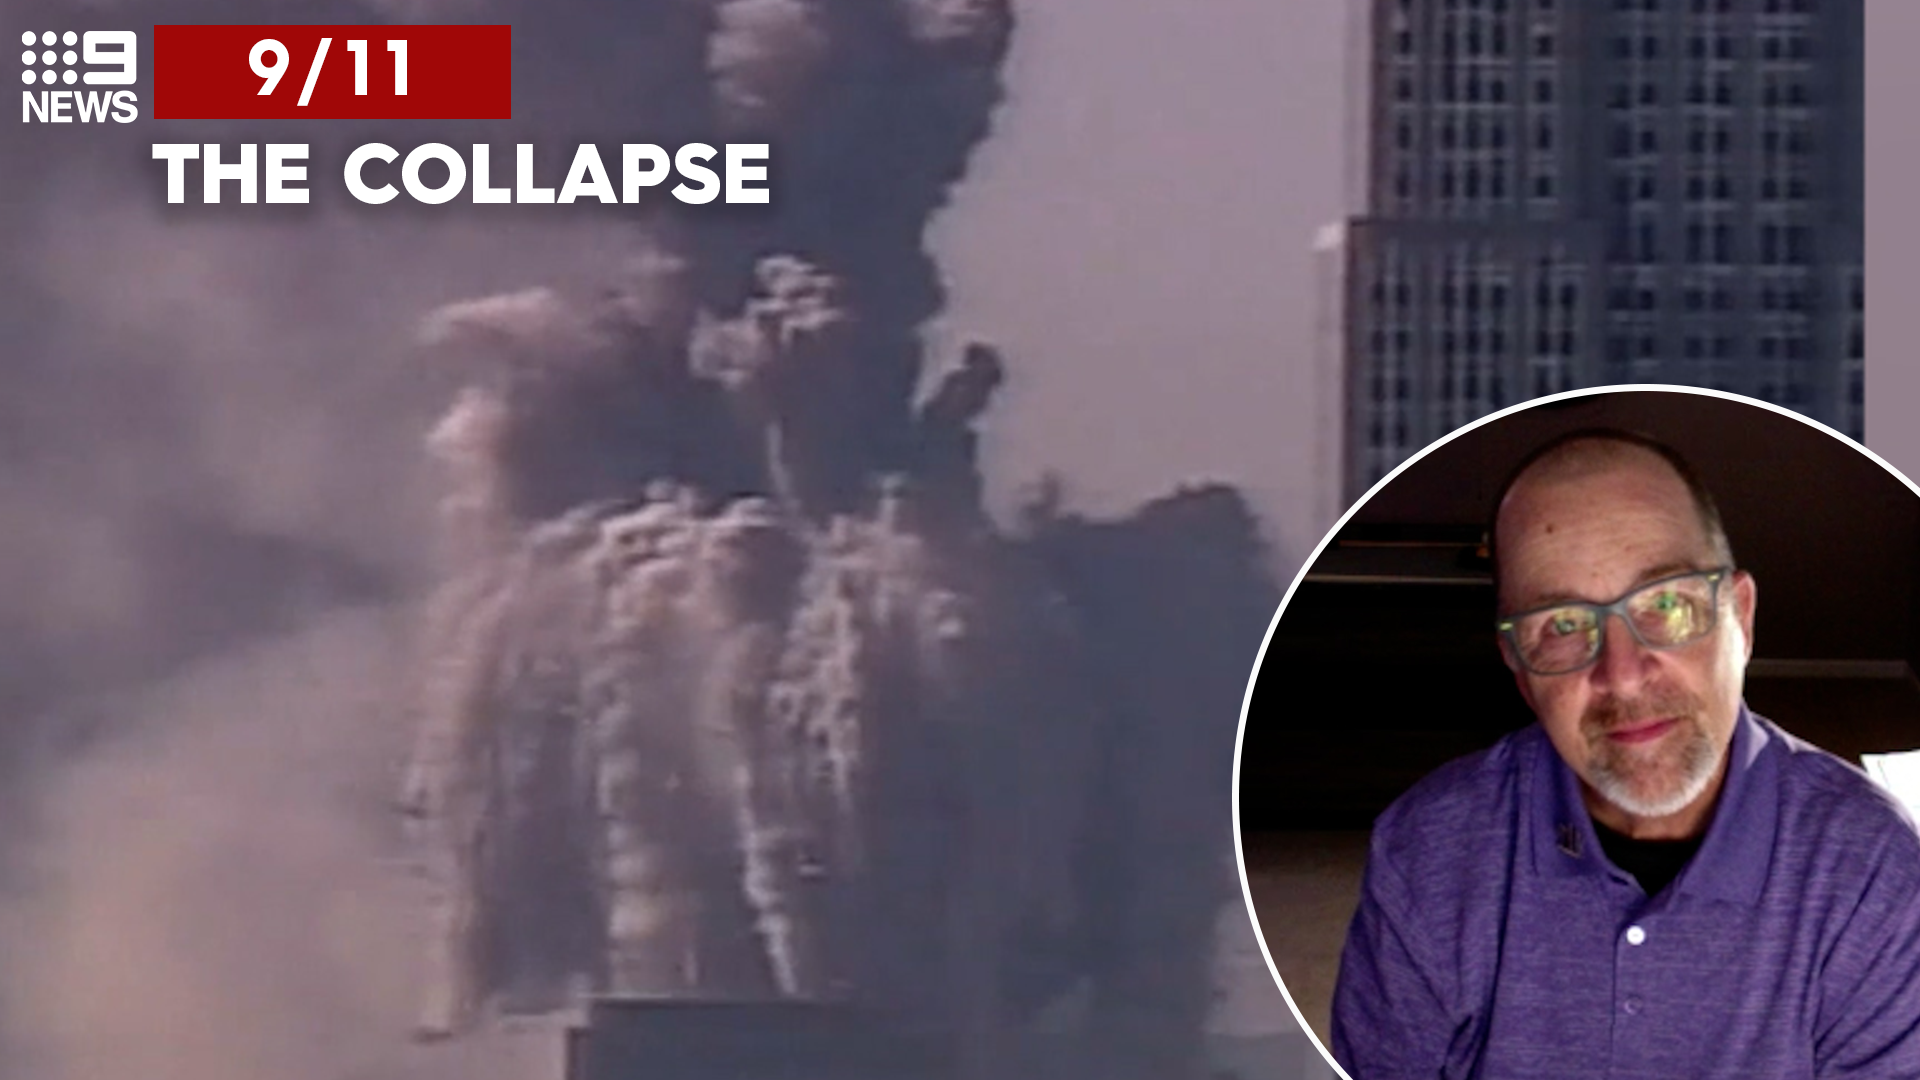 9/11: The collapse minutes after escape